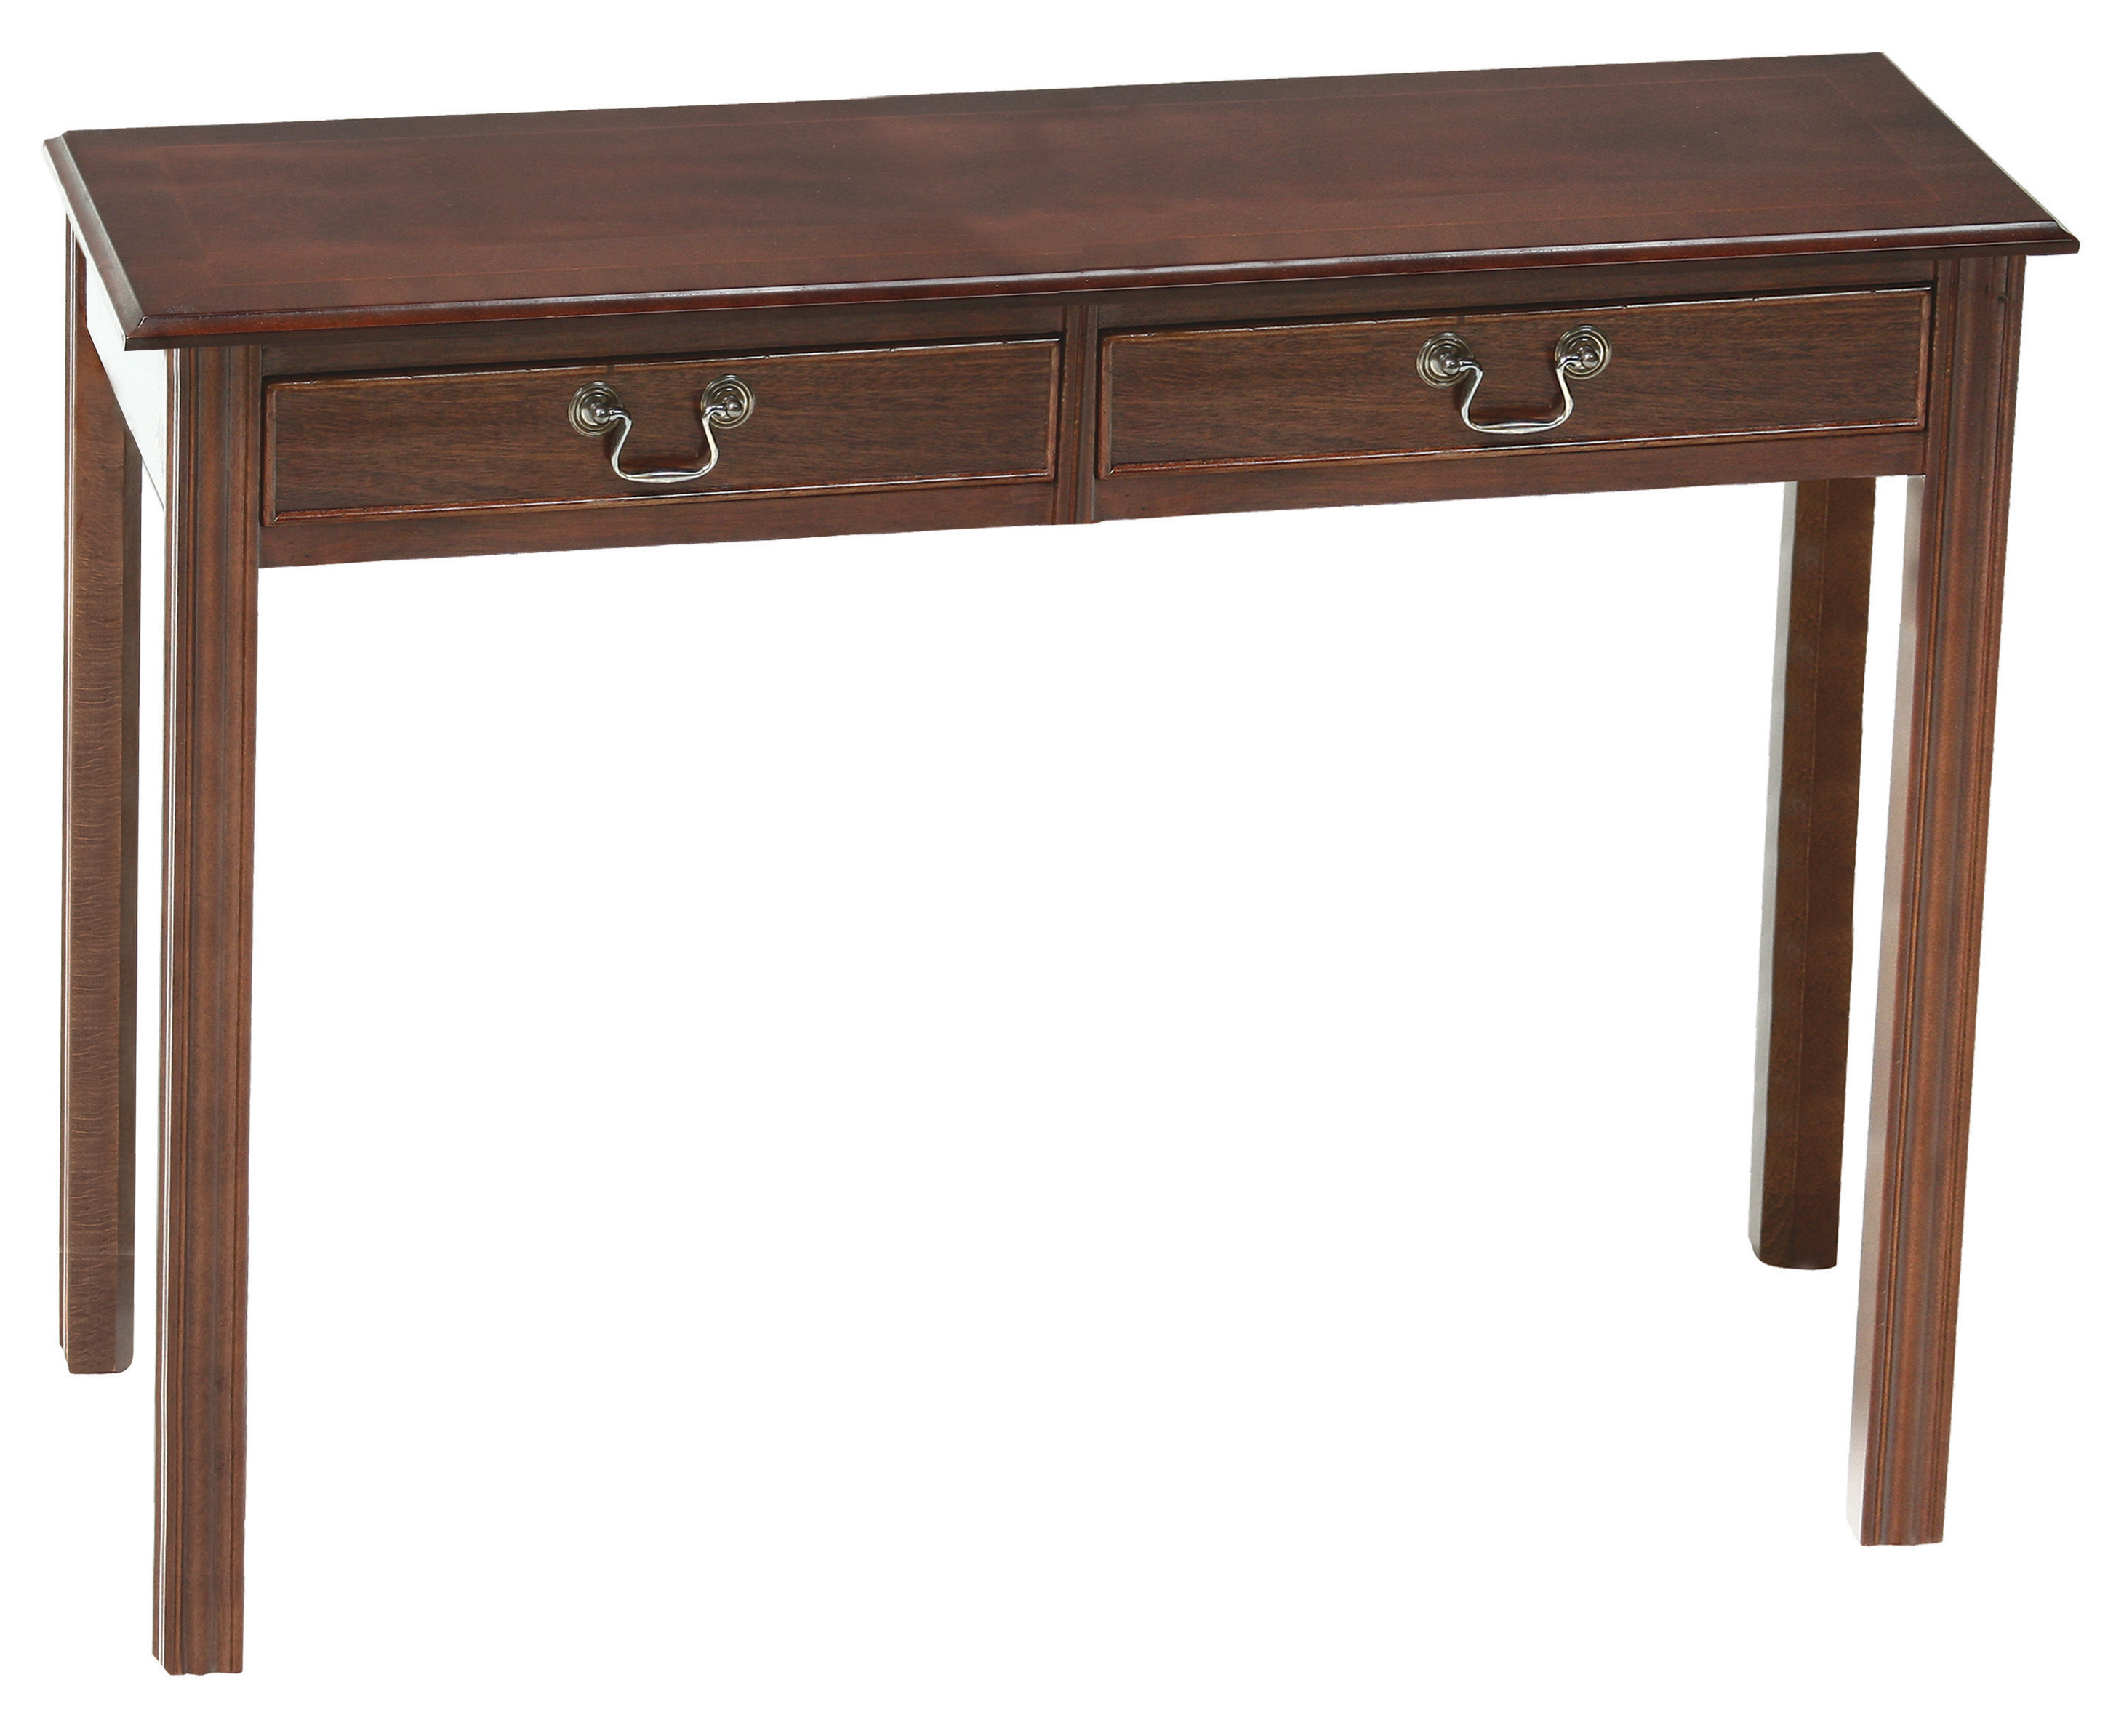 Chippendale narrow 2 drawer hall hall tables for Html table width